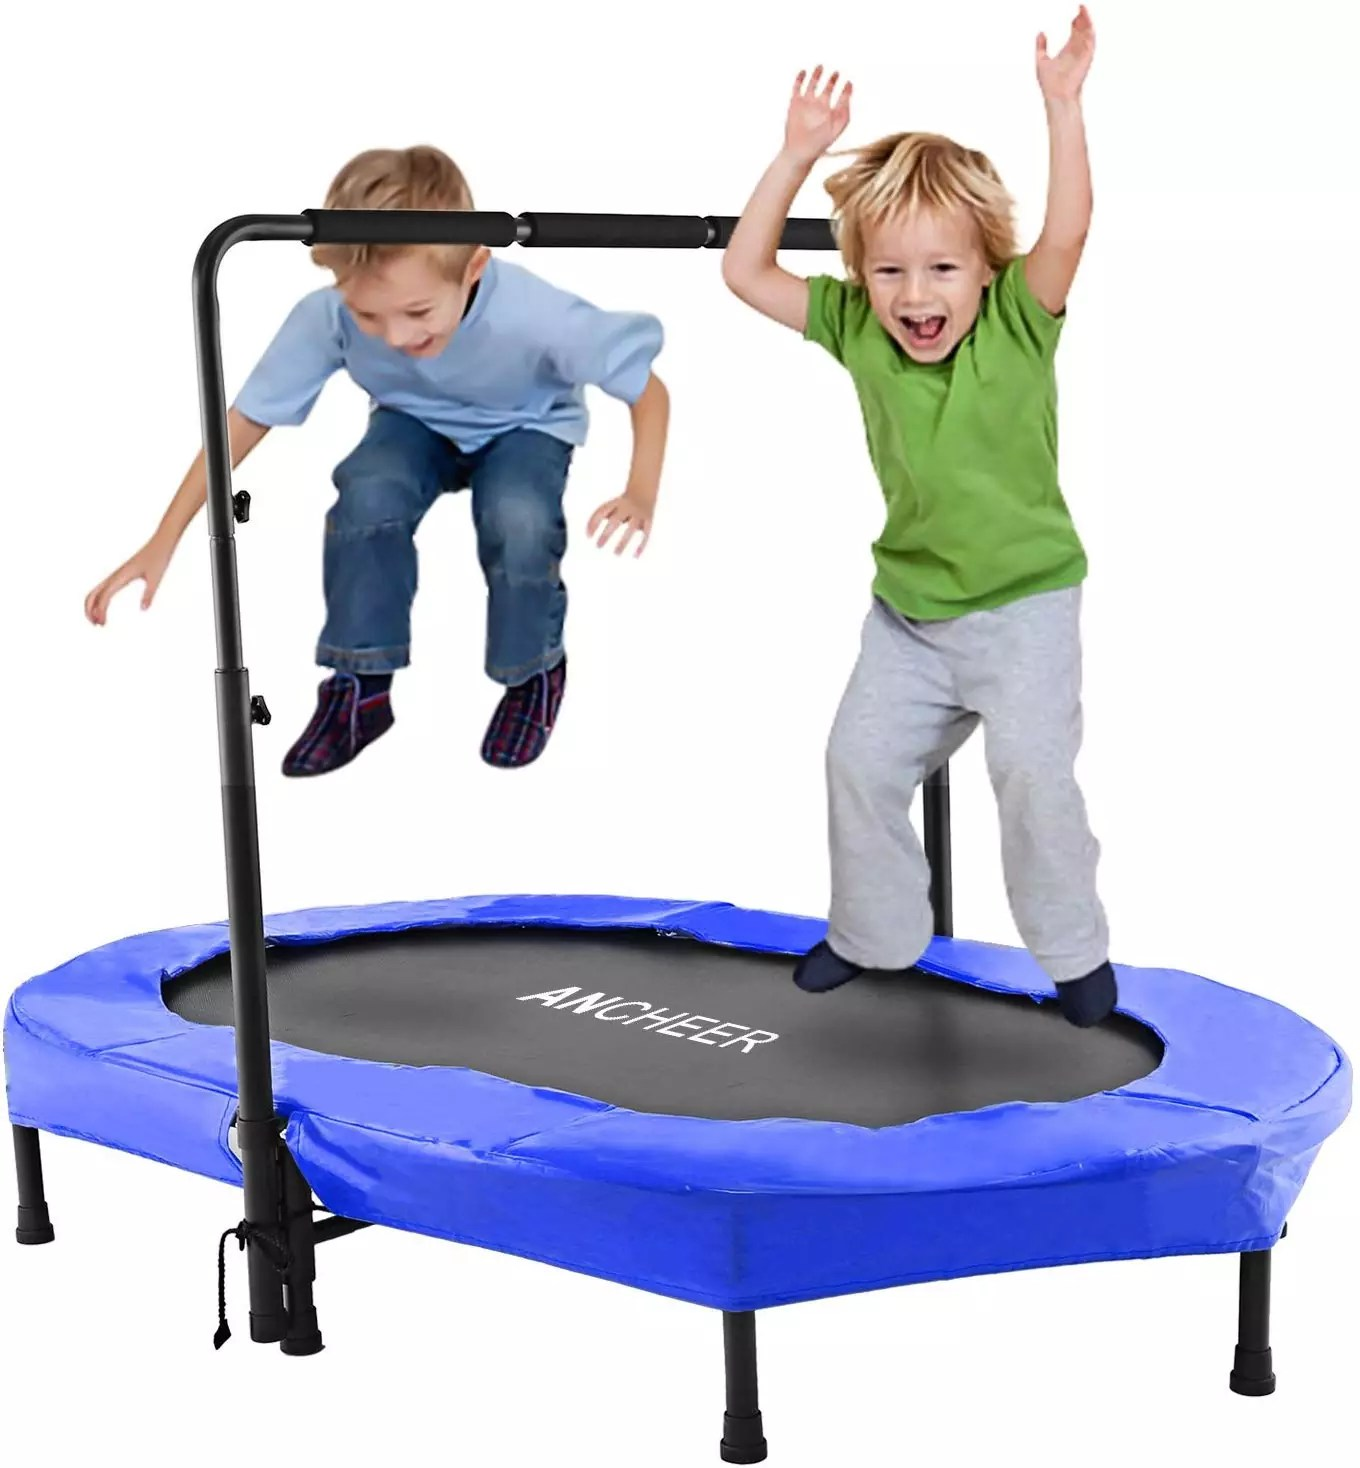 ANCHEER Mini Trampoline for Two Kids, Parent-Child Trampoline